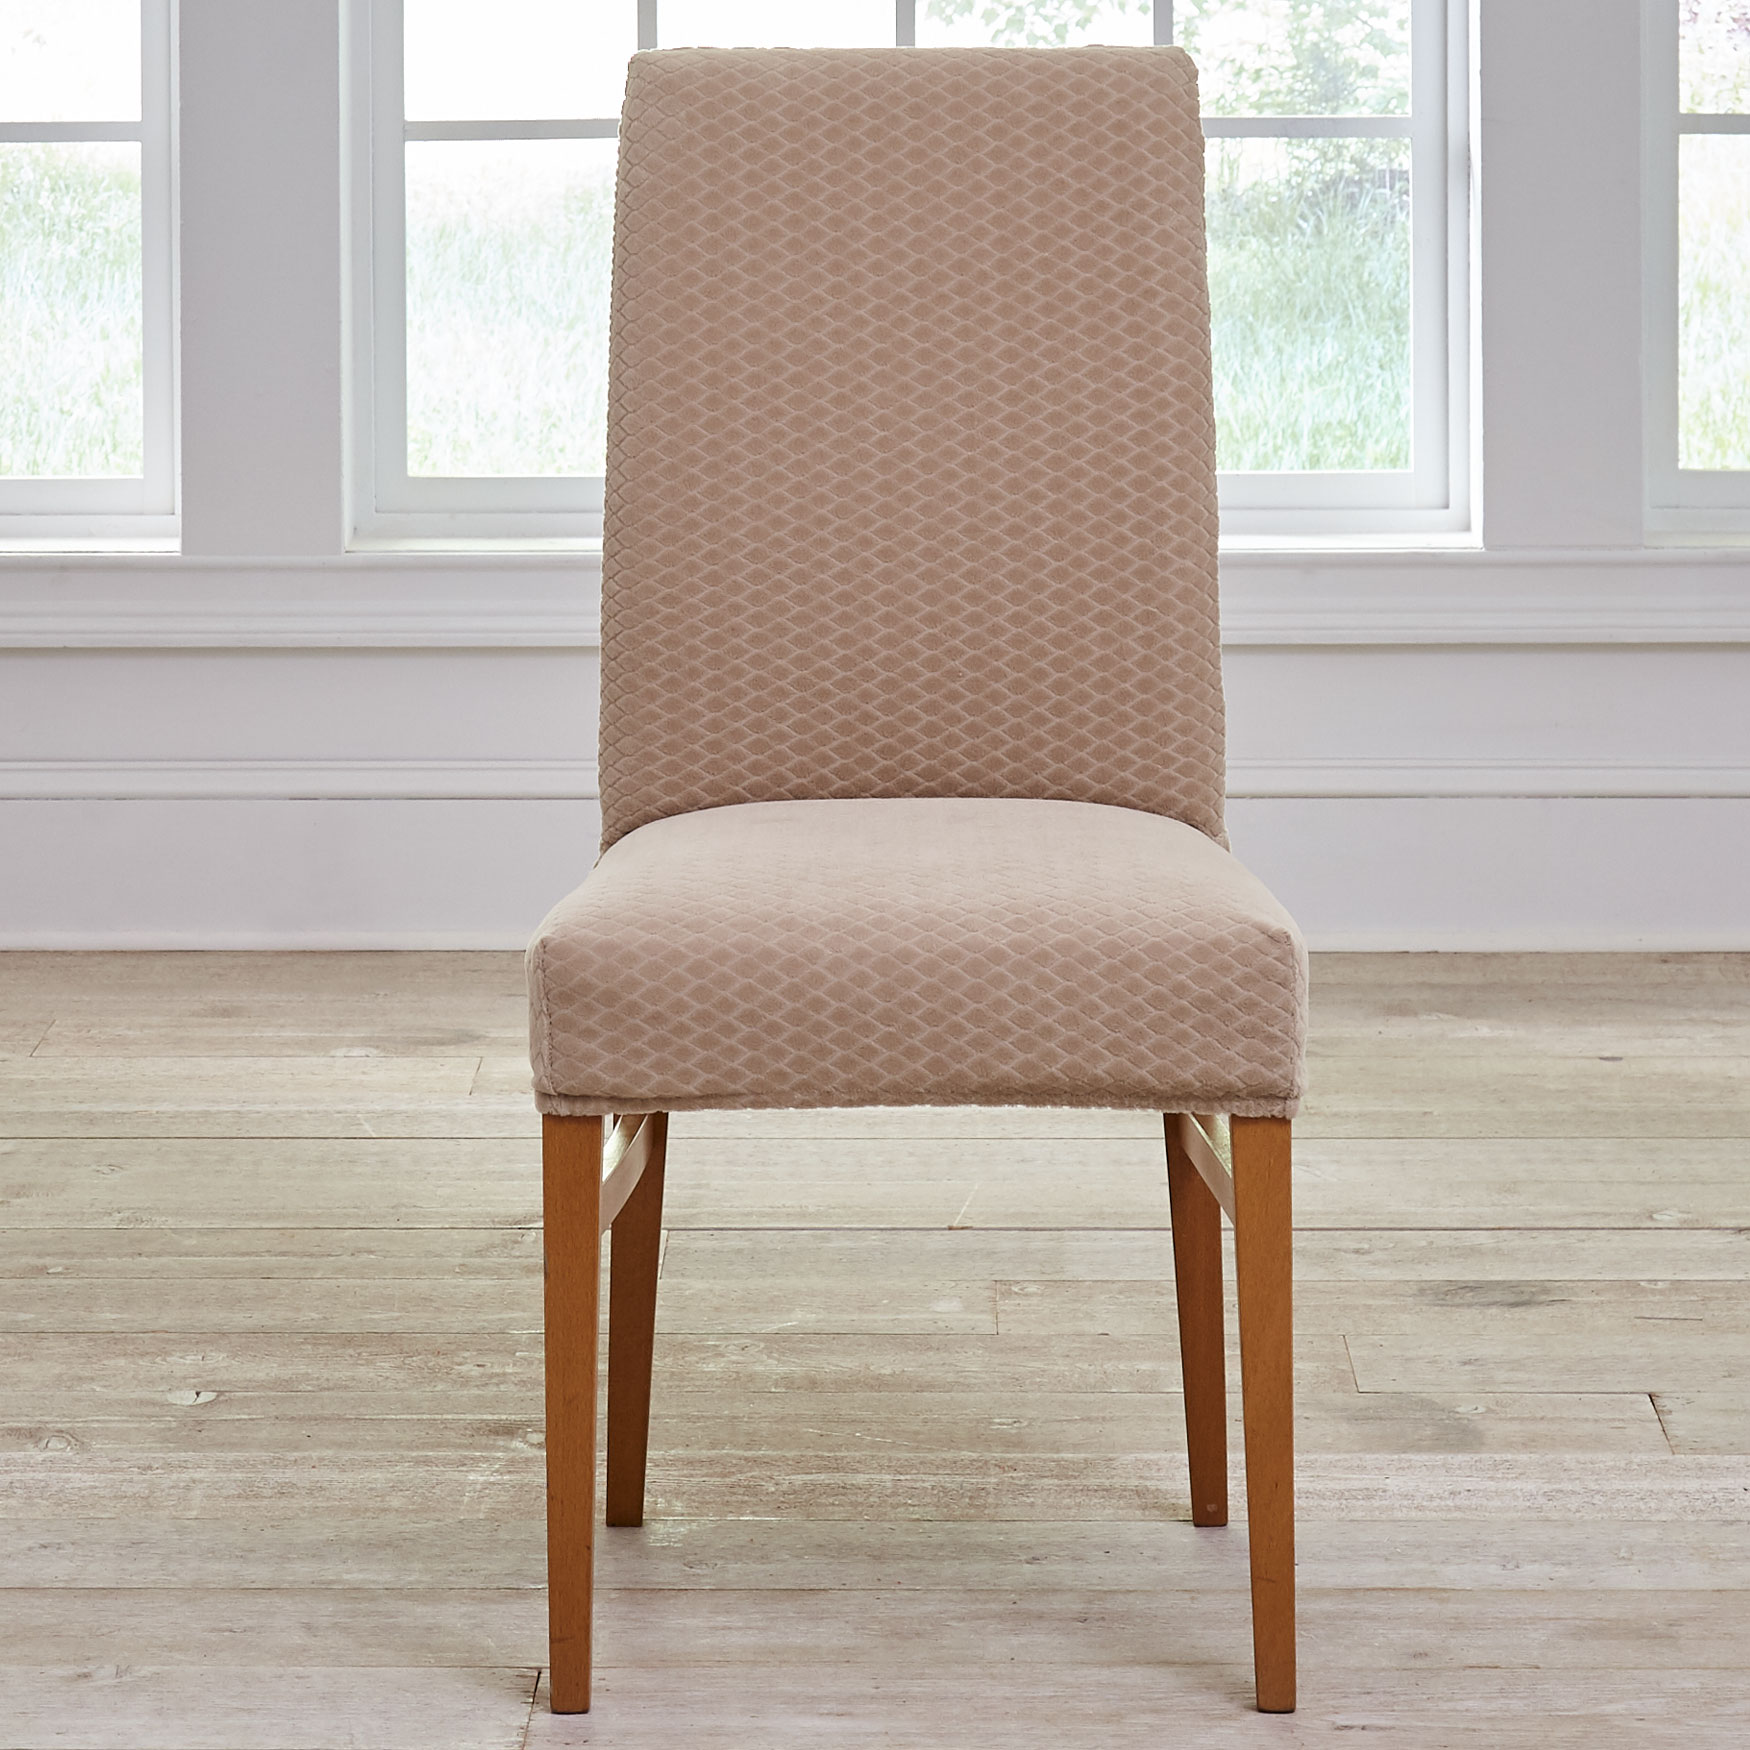 BH Studio® Stretch Diamond Dining Chair Slipcover,